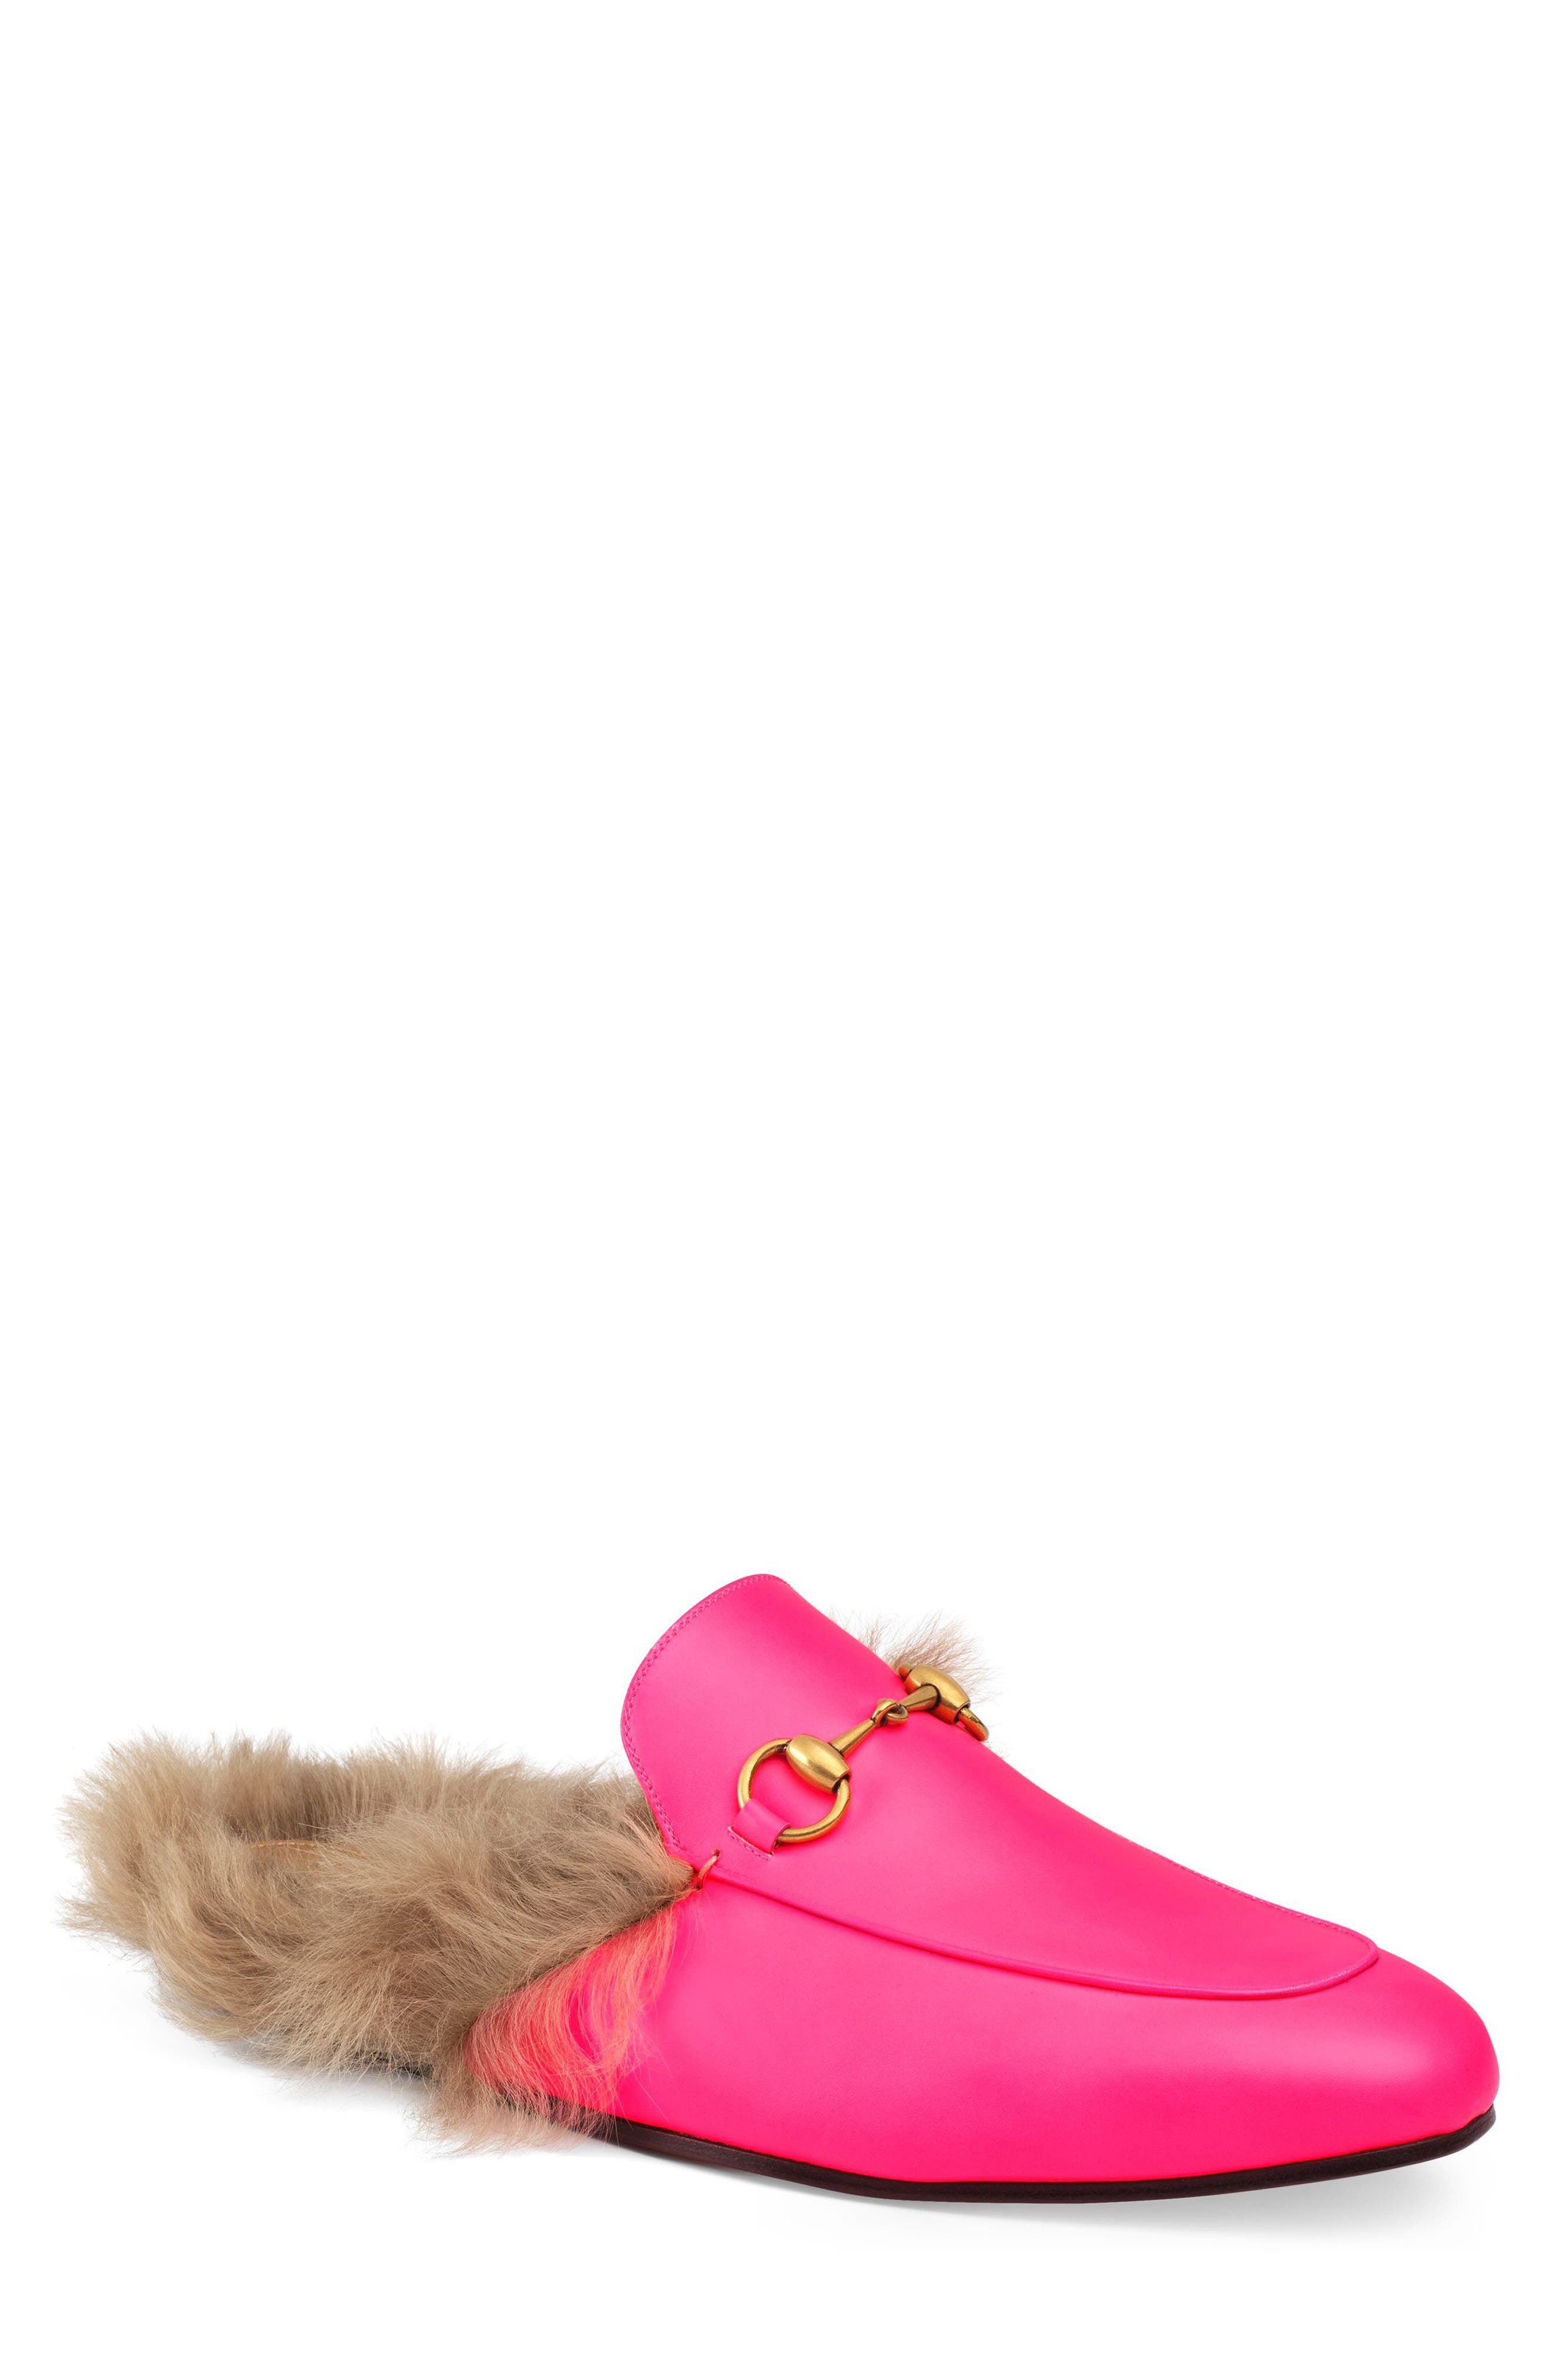 GUCCI, Princetown Genuine Shearling Lined Mule Loafer, Main thumbnail 1, color, PINK/ PINK